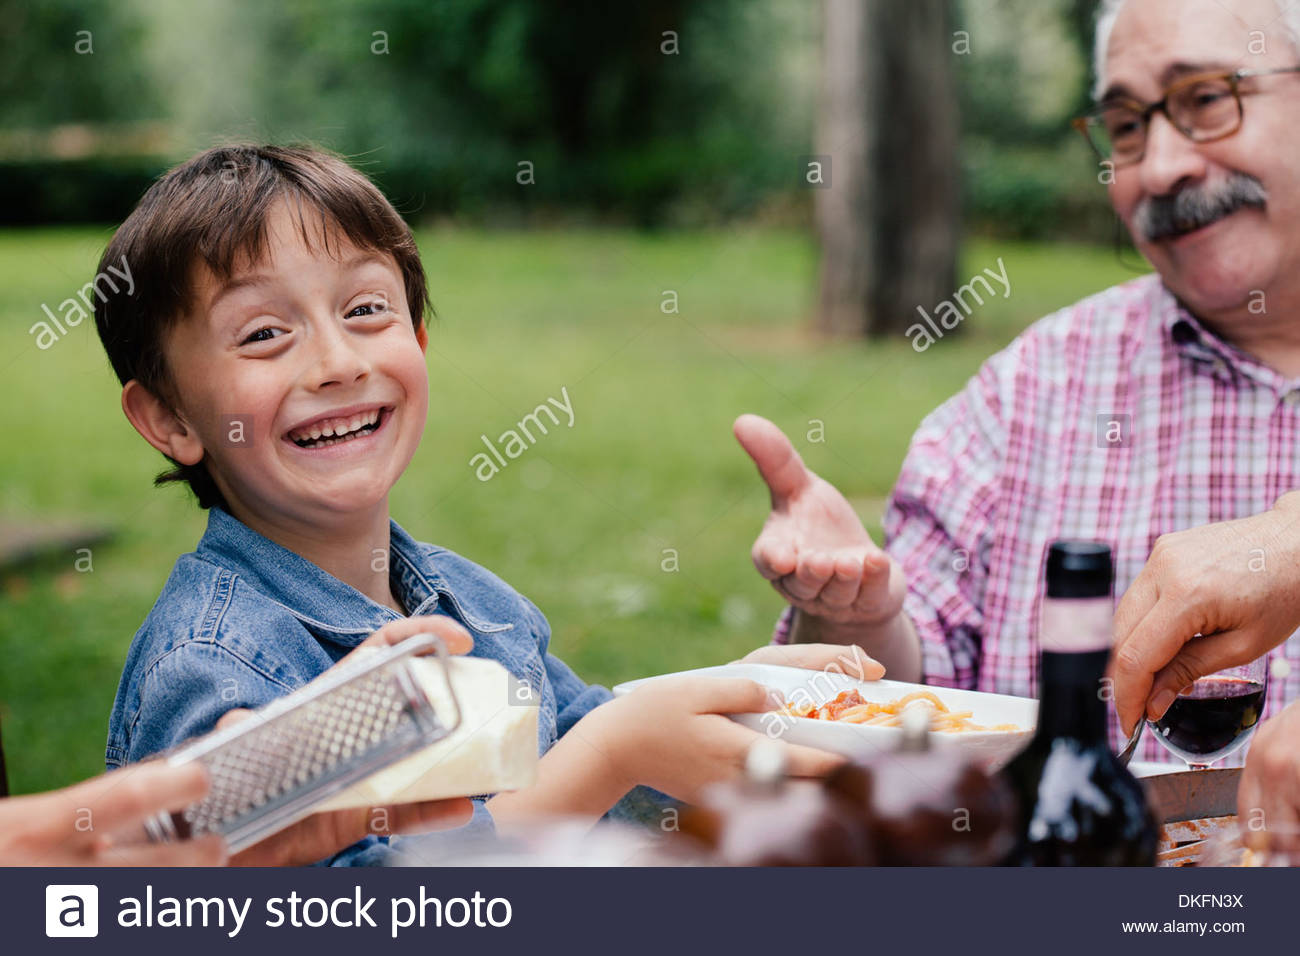 Happy boy and grandfather at family meal - Stock Image